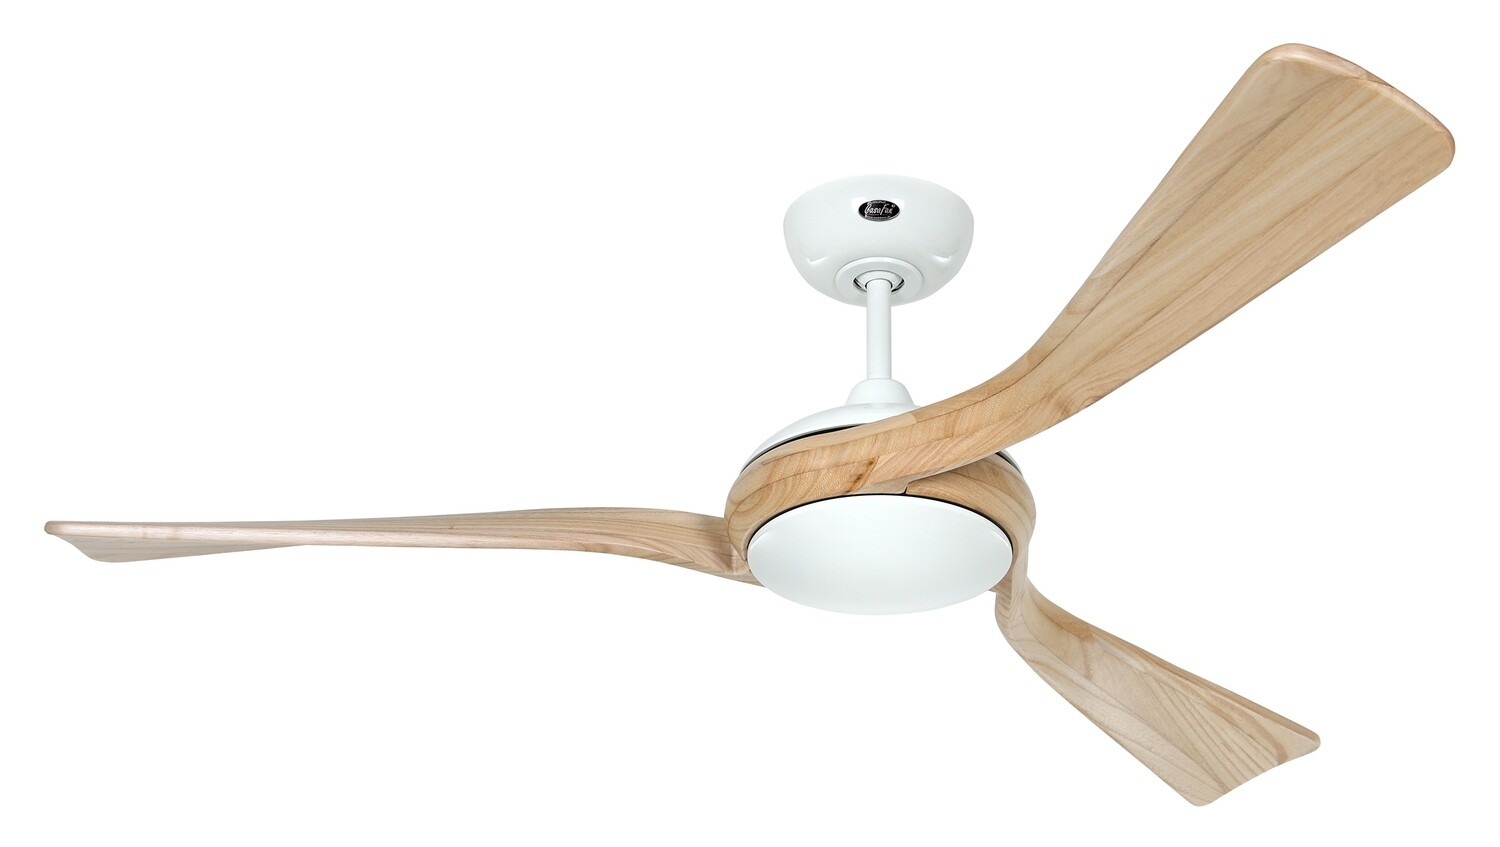 Eco Interior 140 WE-NT  ceiling fan by CASAFAN Ø140 light integrated* and remote control included